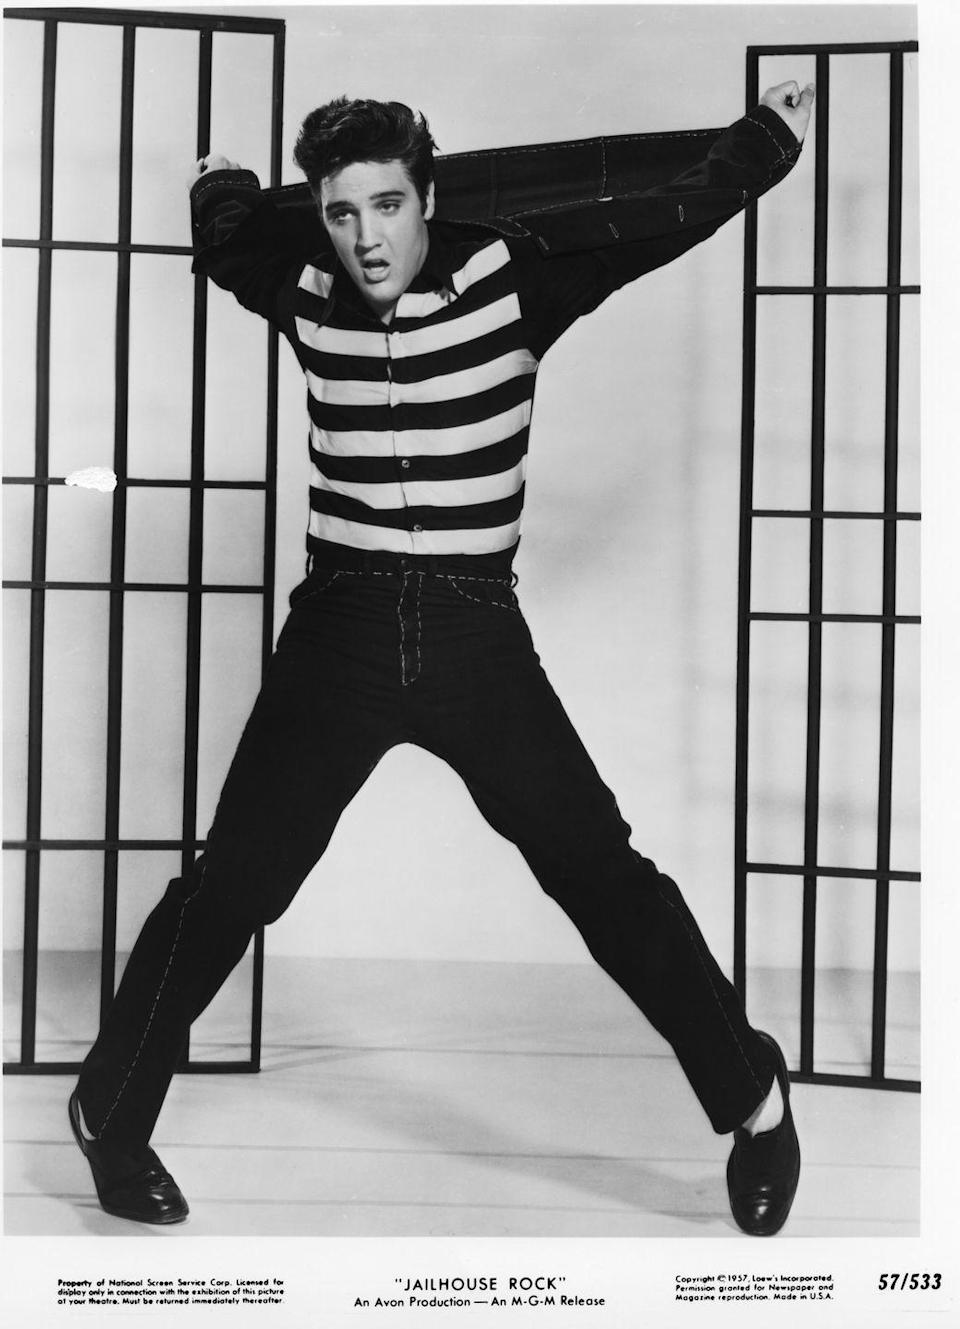 <p>There are denim outfits and then there is <em>the</em> denim outfit Elvis Presley sported in <em>Jailhouse Rock</em>. The King of Rock 'n Roll's famous look paired a black Canadian tuxedo with a black and white striped shirt for a scene in one of his most beloved films. </p>